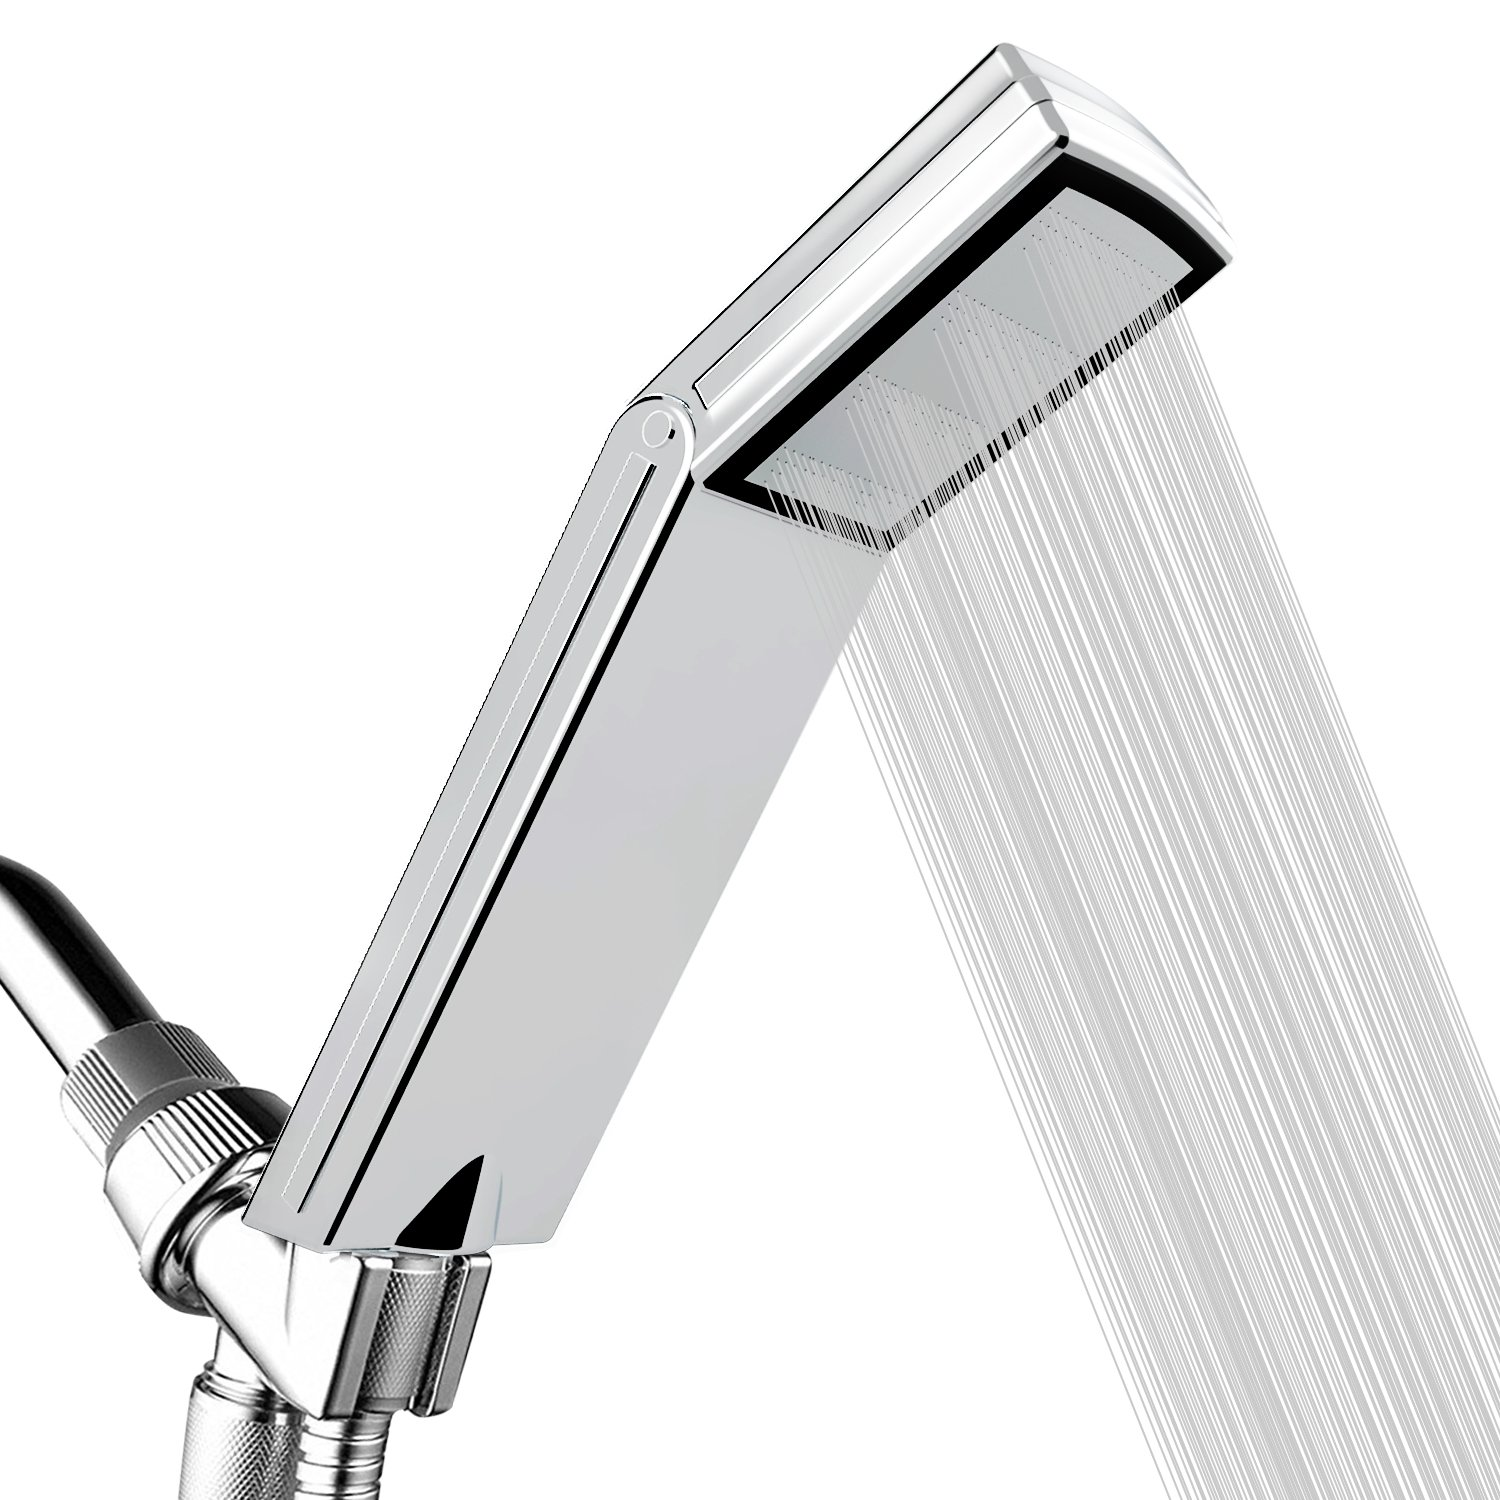 High Pressure Shower Head for Low Water Pressure Supply Pipeline - Luxury Handheld Showerhead with Patented ON/OFF Pause Switch - Bath Booster Spary Bathroom Accessories - Square With Chrome face by jooe